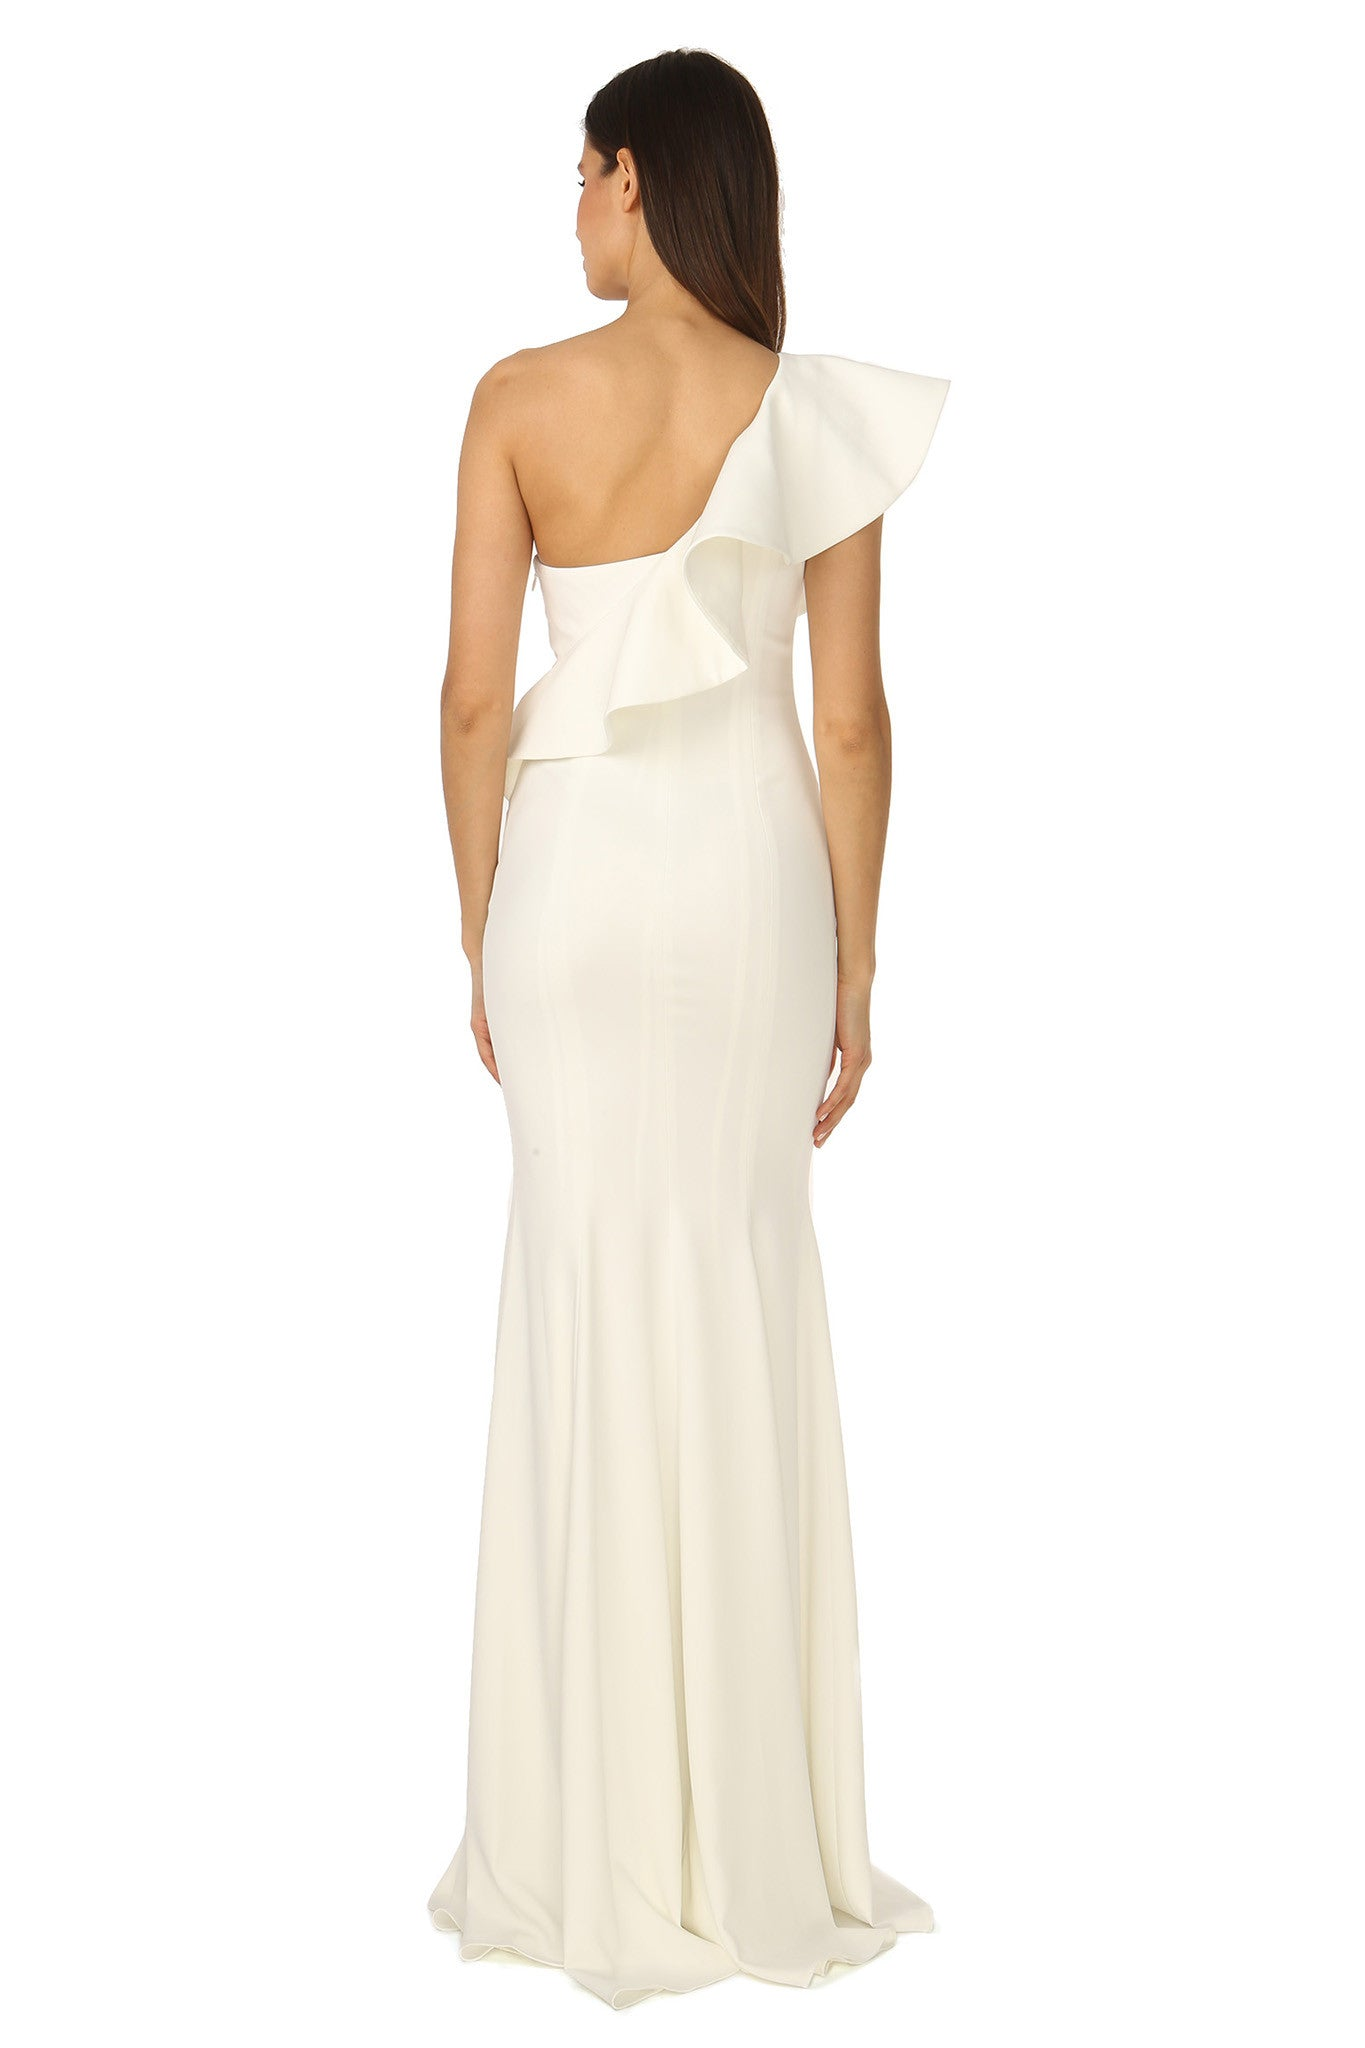 Jay Godfrey Ivory One-Shoulder Ruffle Gown - Back View